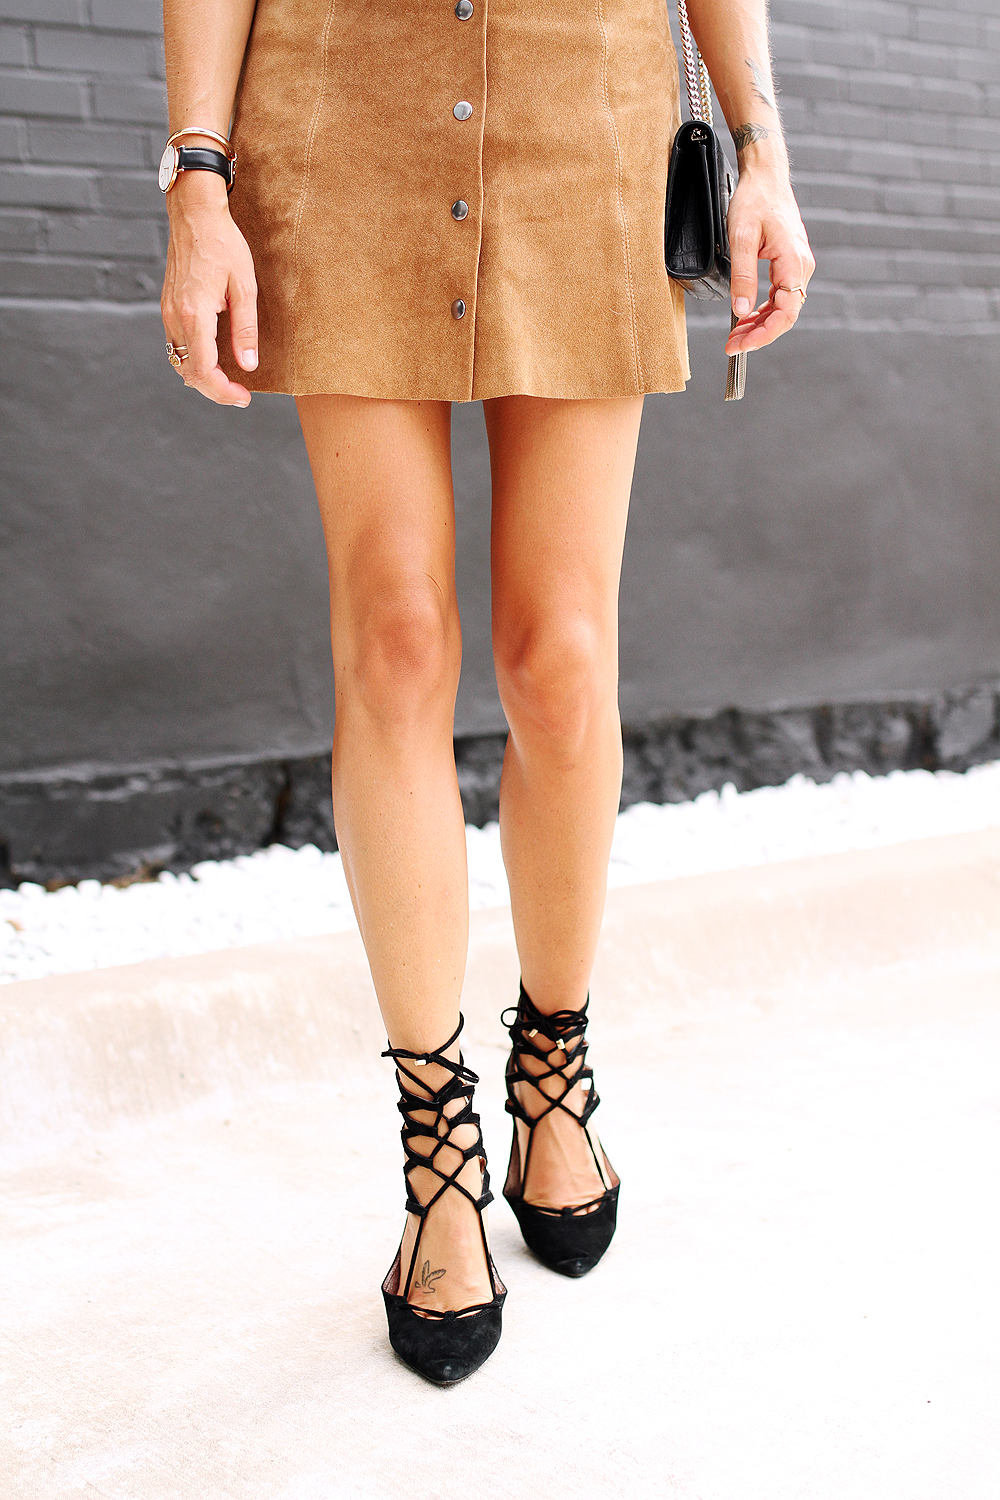 fashion-jackson-topshop-tan-suede-button-front-skirt-jeffery-campbell-black-lace-up-flats